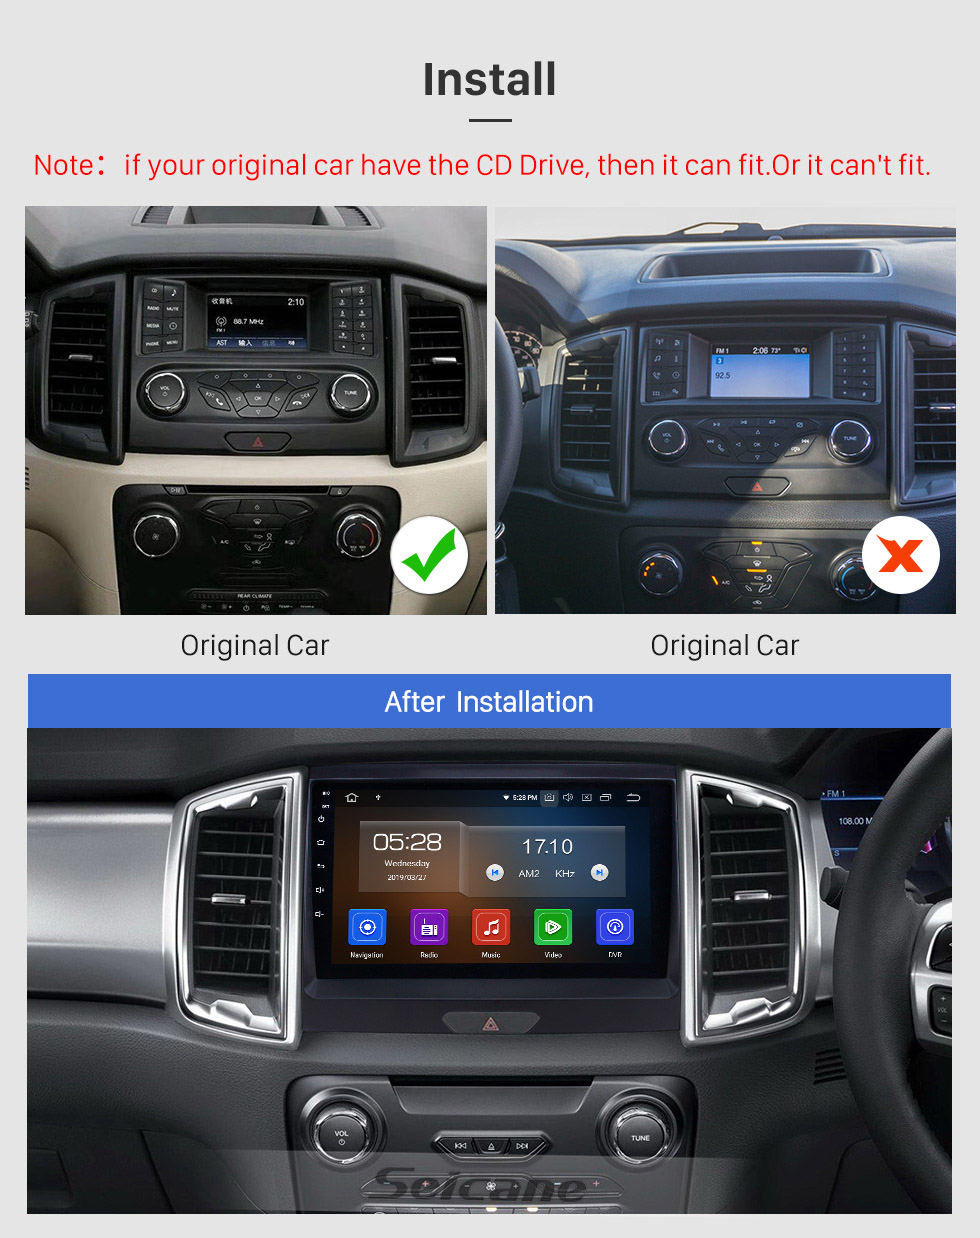 Seicane 2015 Ford Ranger Touchscreen Android 9.0 9 inch GPS Navigation Radio Bluetooth Multimedia Player Carplay Music AUX support Digital TV 1080P